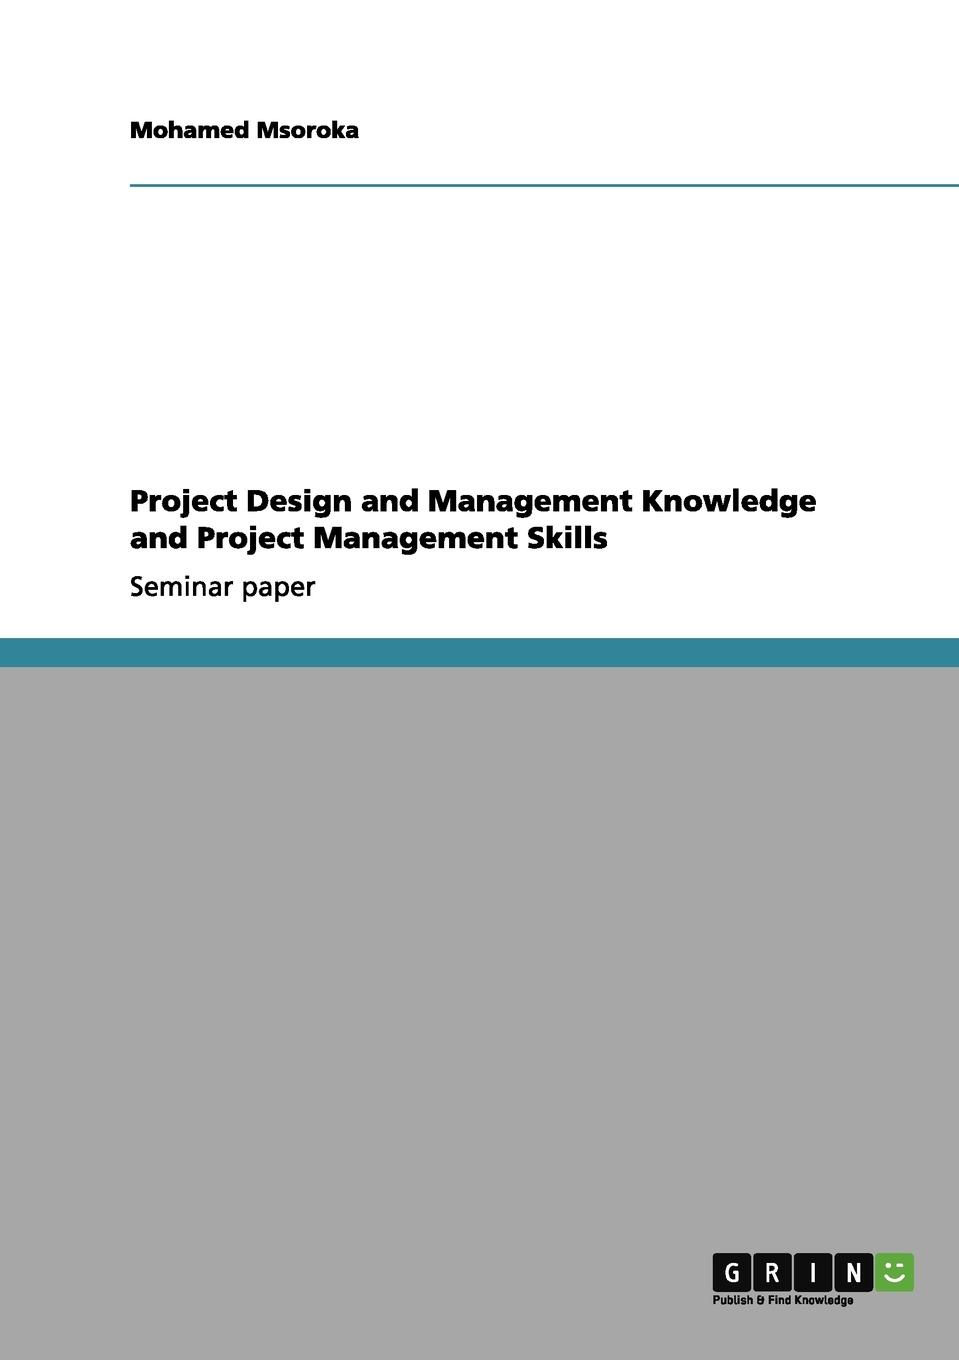 цены на Mohamed Msoroka Project Design and Management Knowledge and Project Management Skills  в интернет-магазинах